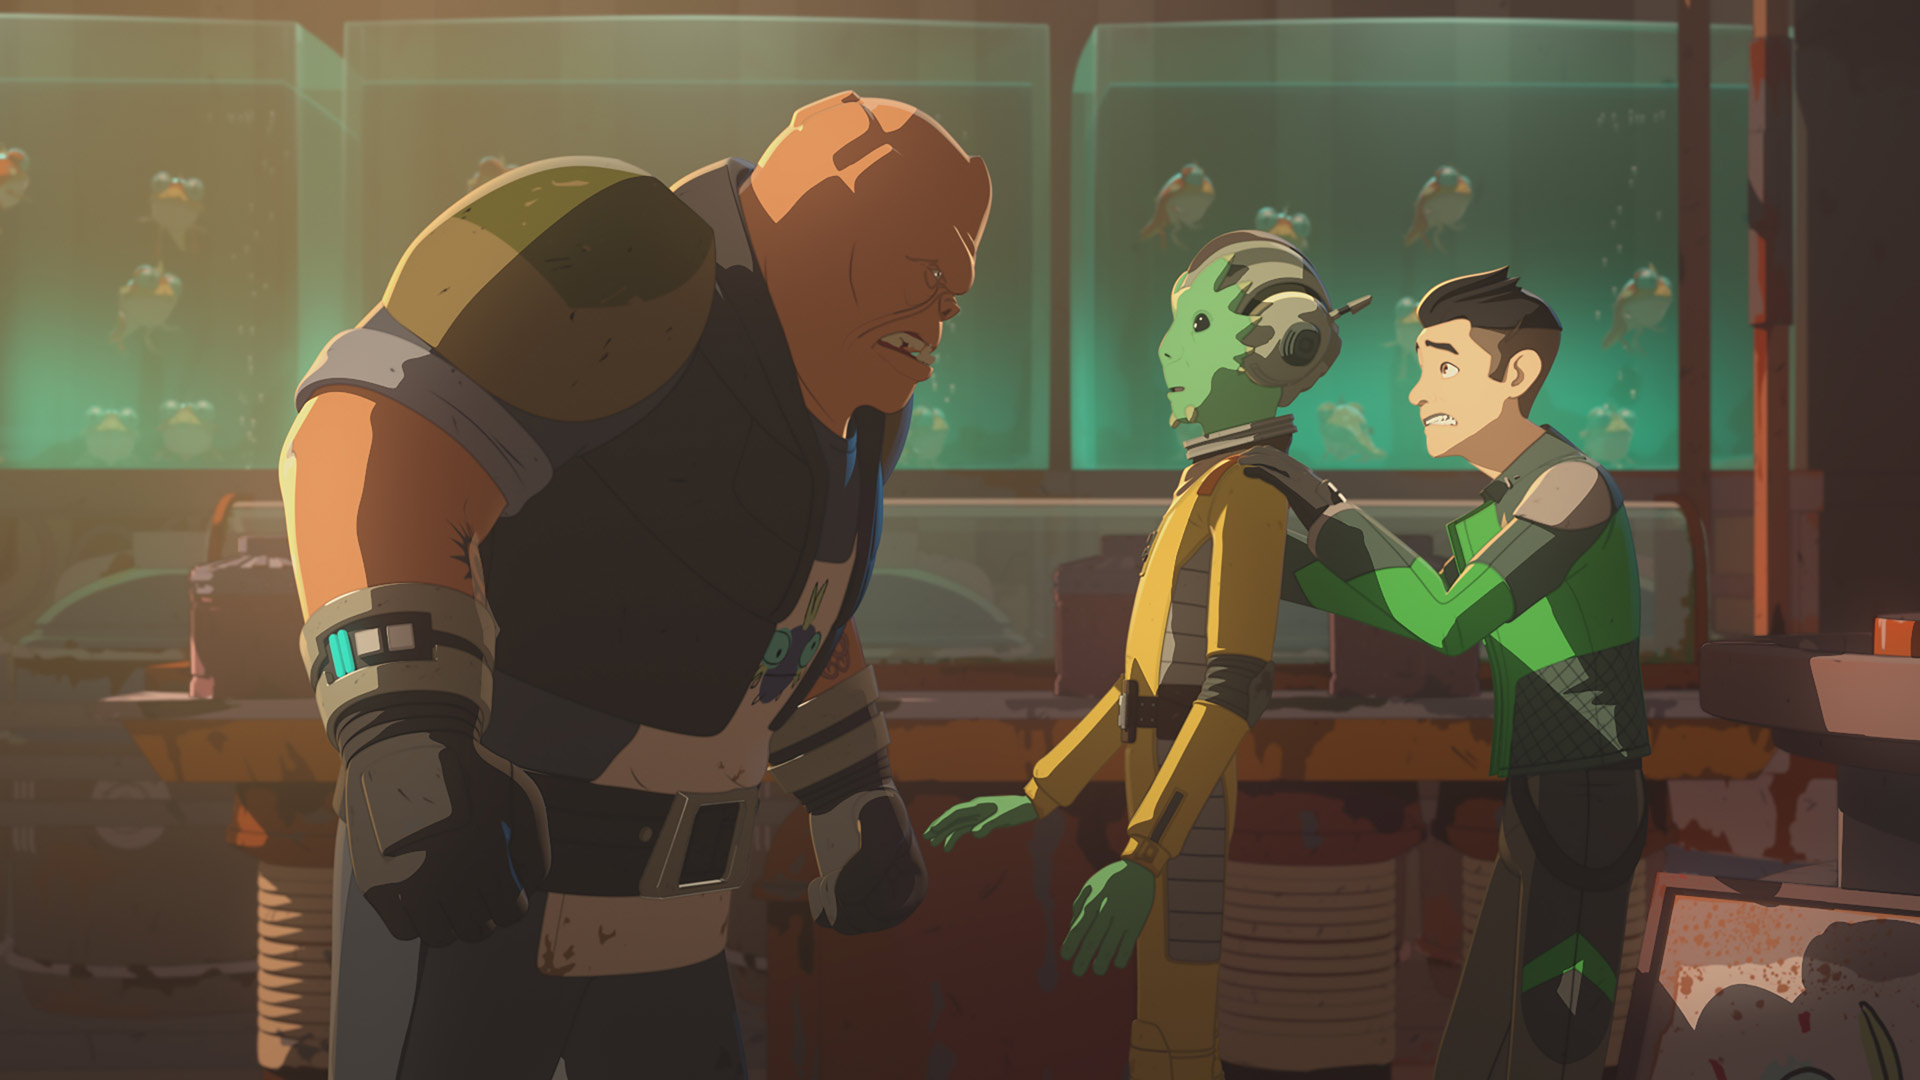 Neeku and Kaz run into trouble in Star Wars Resistance.